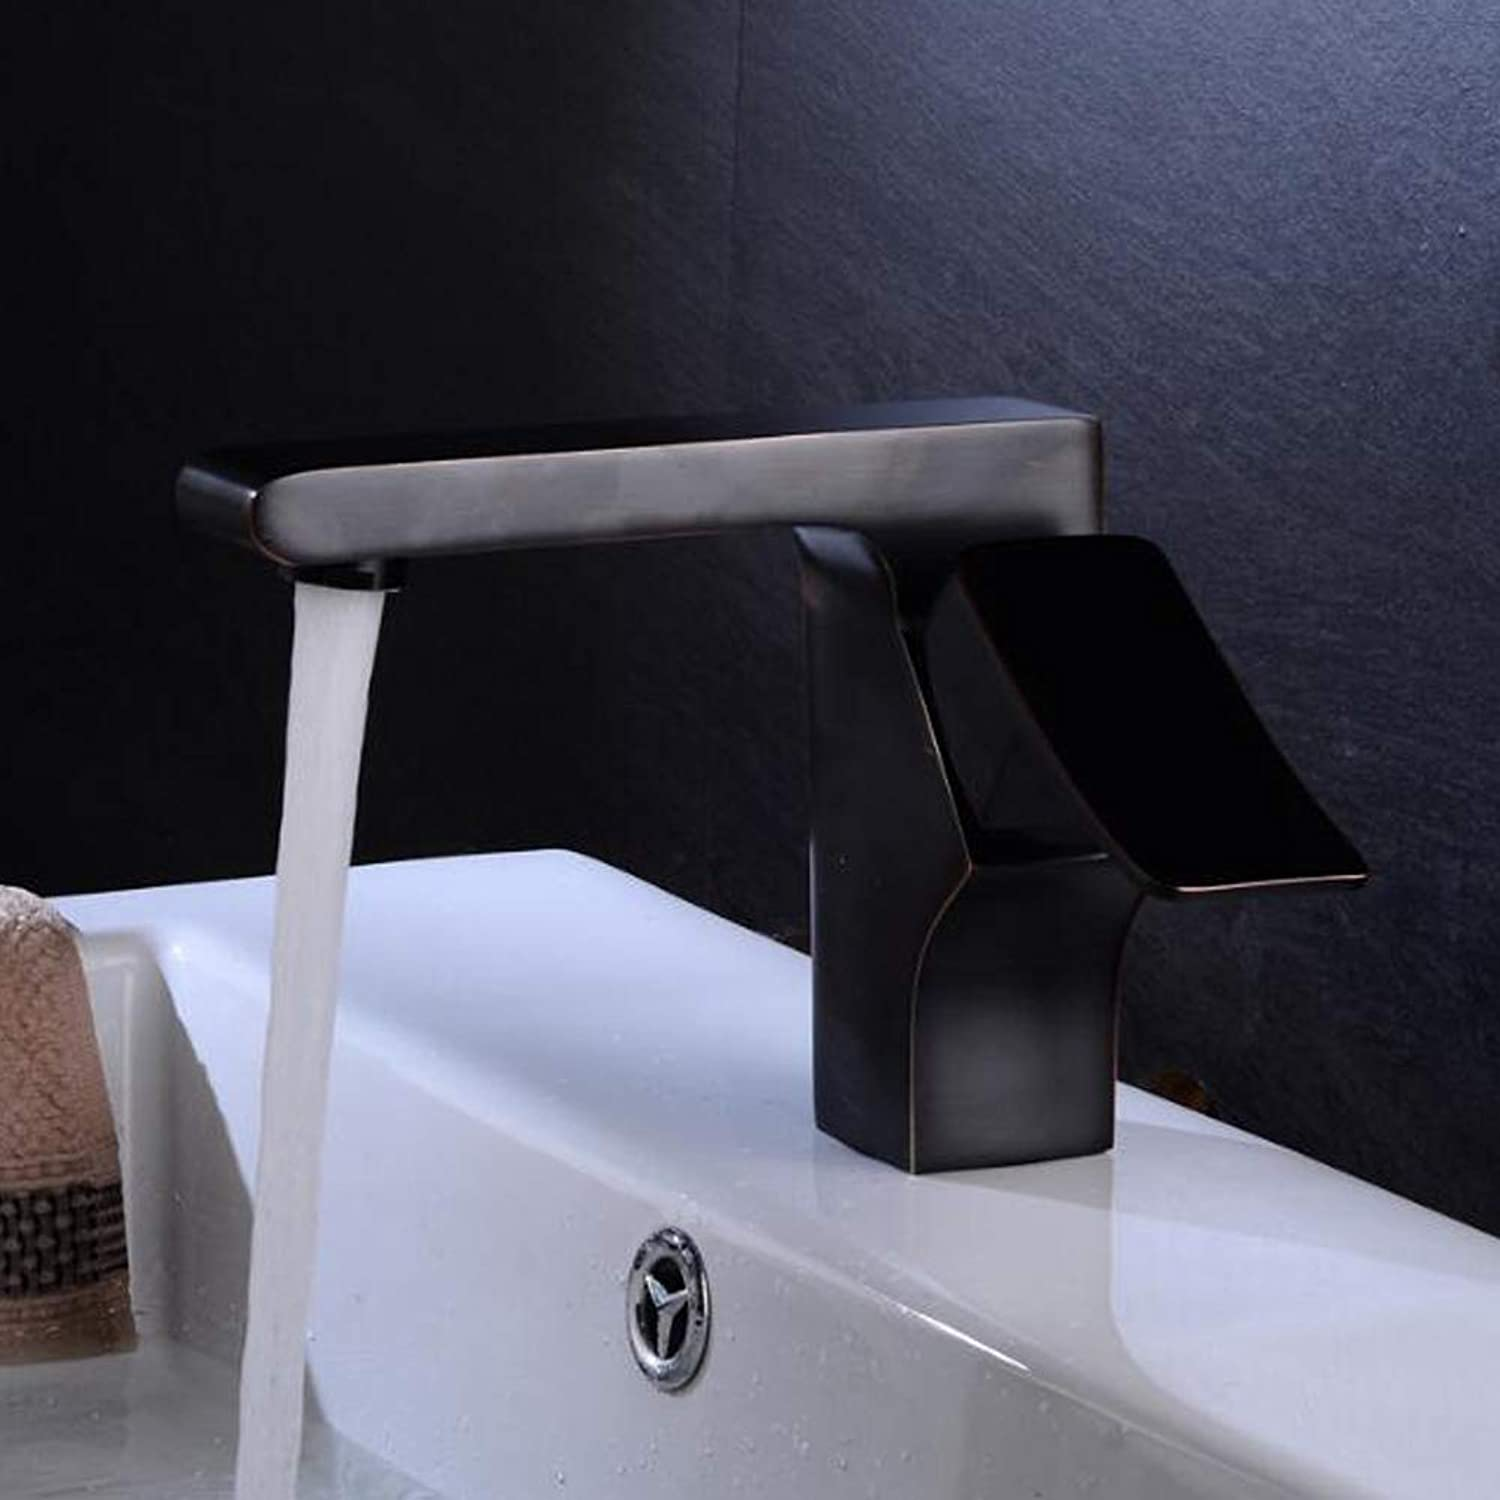 Flat Mouth Square Body Waterfall High Mixer Tap Above Bathroom Counter Basin Faucet Bathroom Sink Hot Cold All Brass Taps